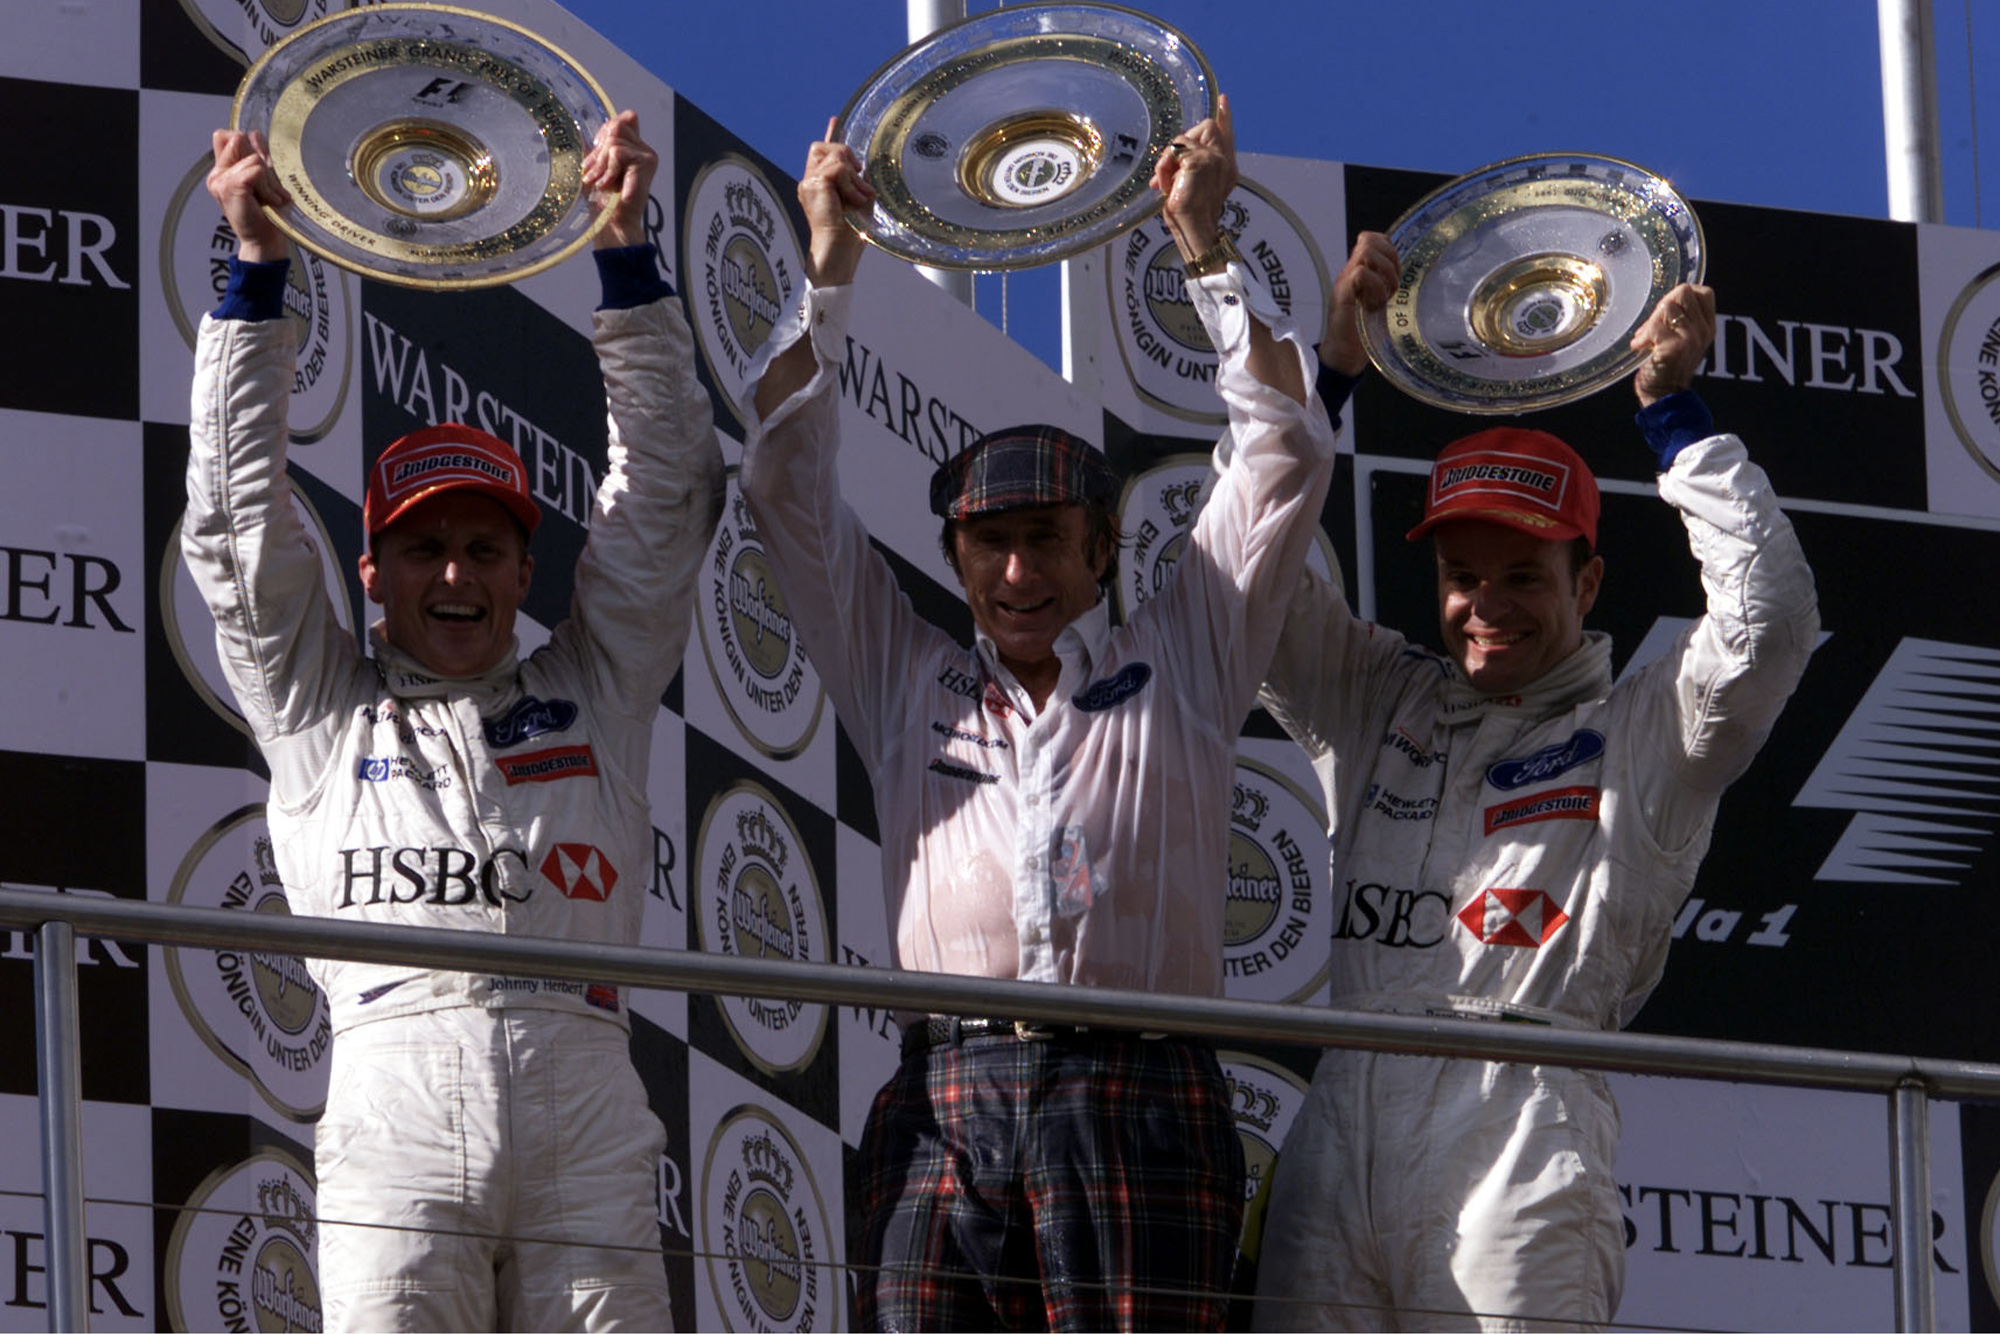 Johnny Herbert Jackie Stewart and Rubens BArrichello on the podium after the 1999 European Grand Prix at the Nurburgring